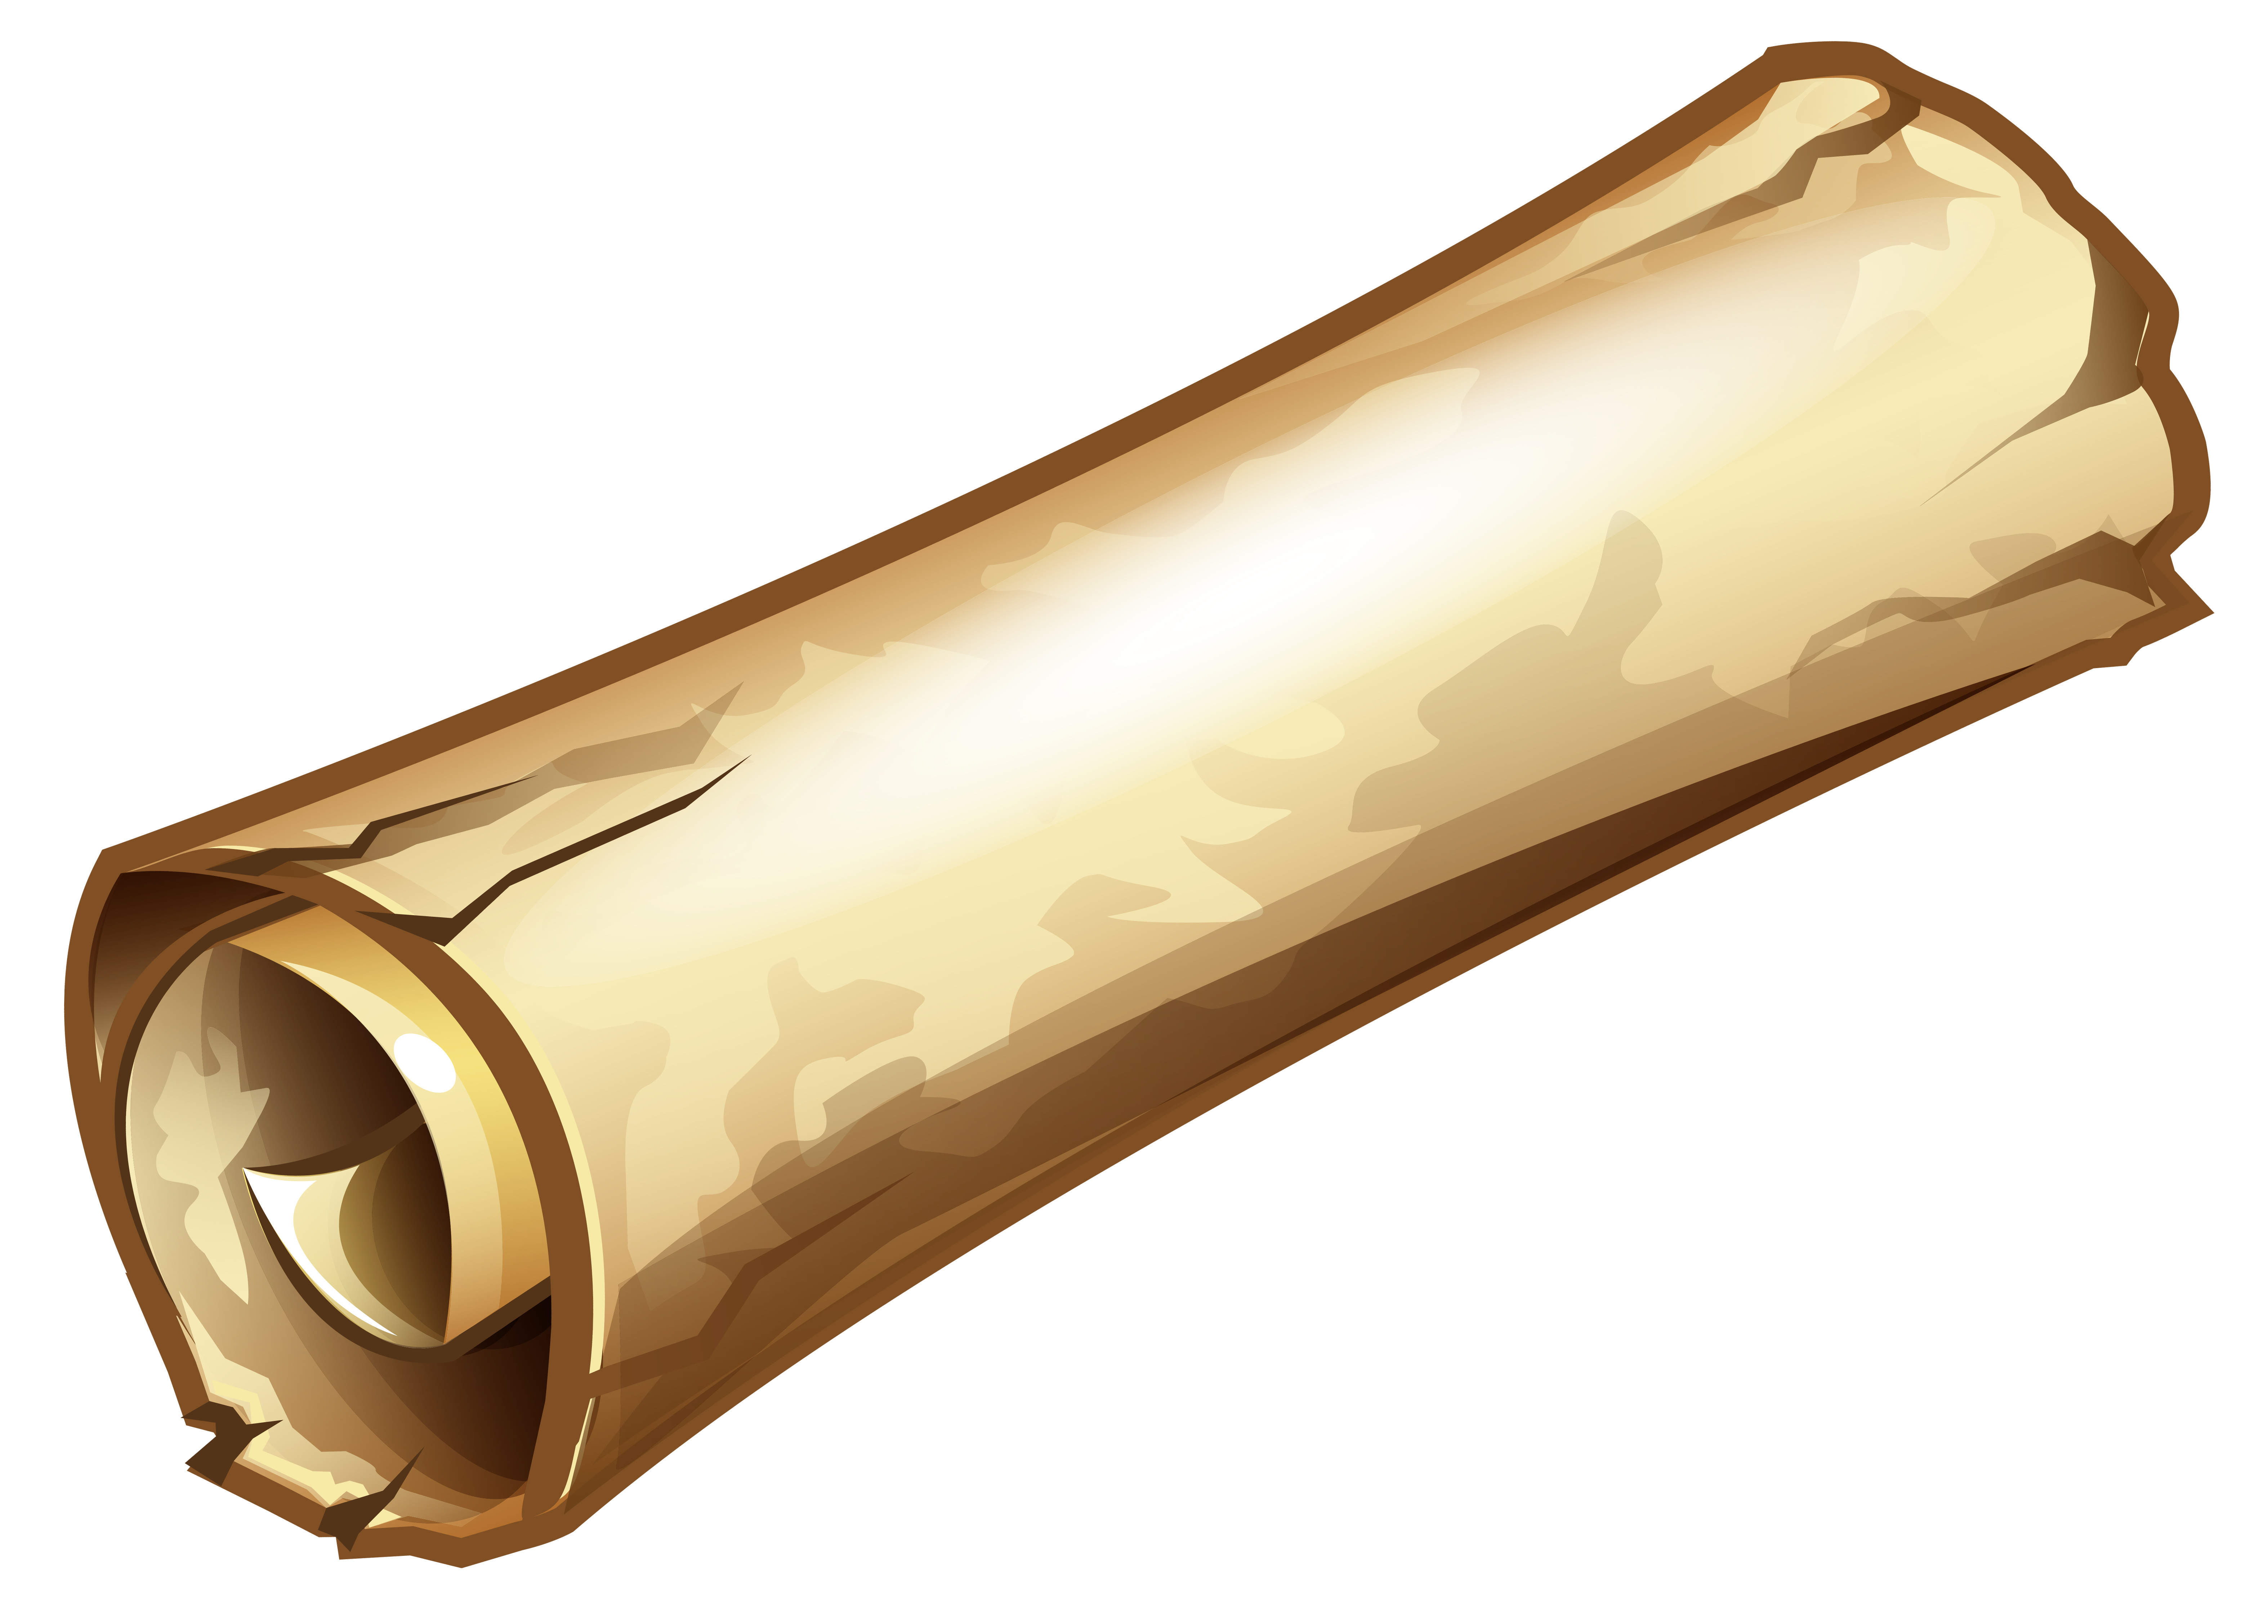 Scrolls clipart scrol. Old scroll png image